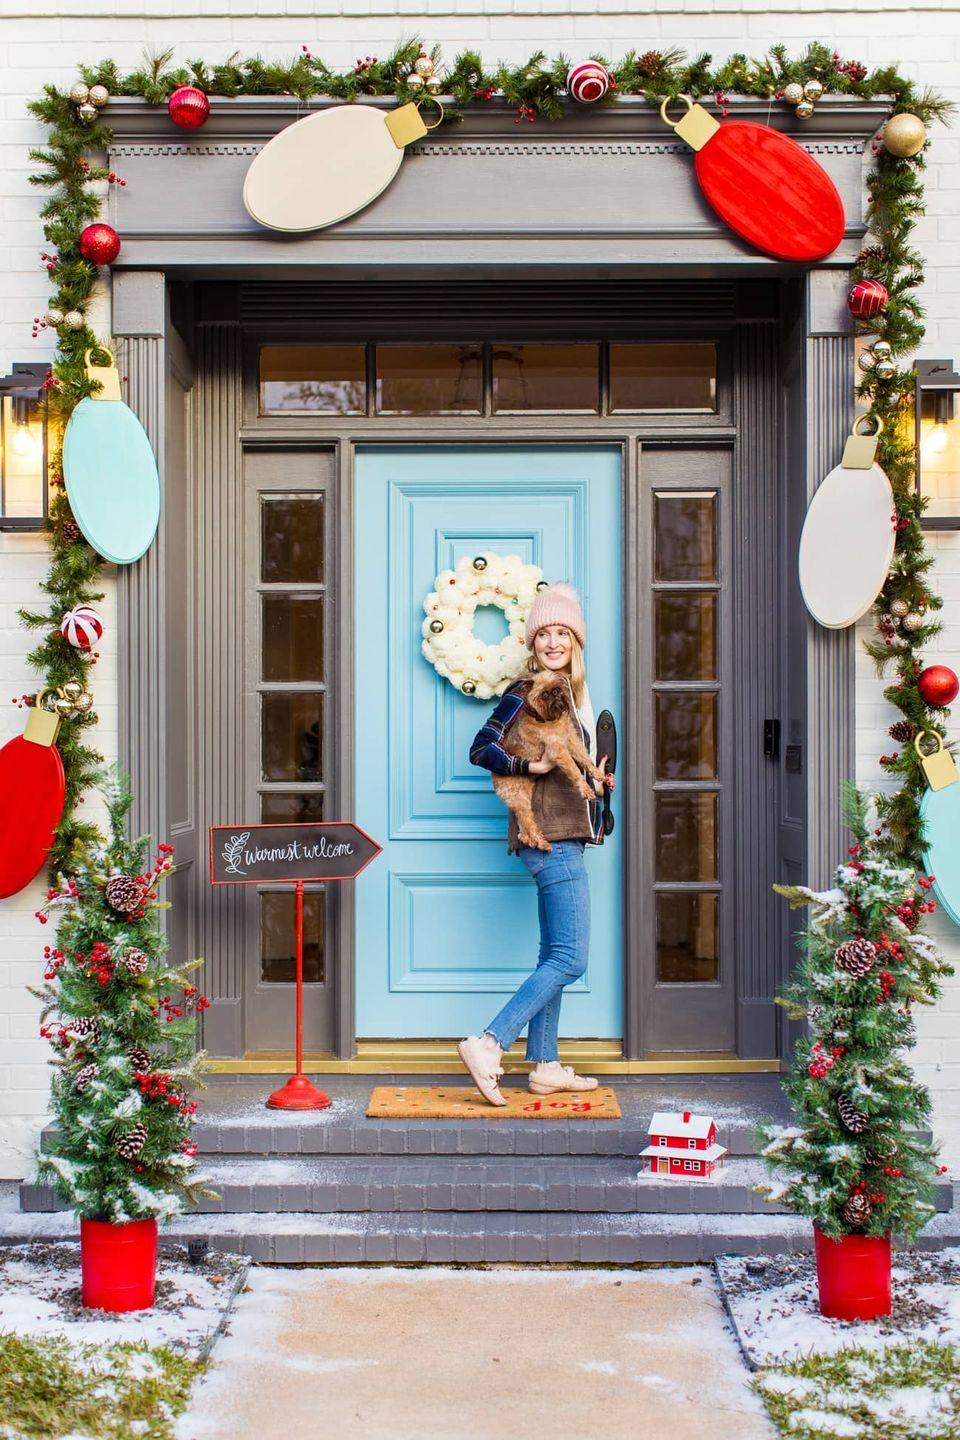 """<p>Who said the twinkle lights have to be real in order to make a big impact on a Christmas porch? This dramatic strand is fun, whimsical, and wow-worthy: It comes together with wood and paint. (No electricity required!)<br></p><p><strong><em>Get the how-to at <a href=""""https://sugarandcloth.com/jumbo-lights-outdoor-diy-christmas-decorations/"""" rel=""""nofollow noopener"""" target=""""_blank"""" data-ylk=""""slk:Sugar & Cloth"""" class=""""link rapid-noclick-resp"""">Sugar & Cloth</a>.</em></strong></p>"""